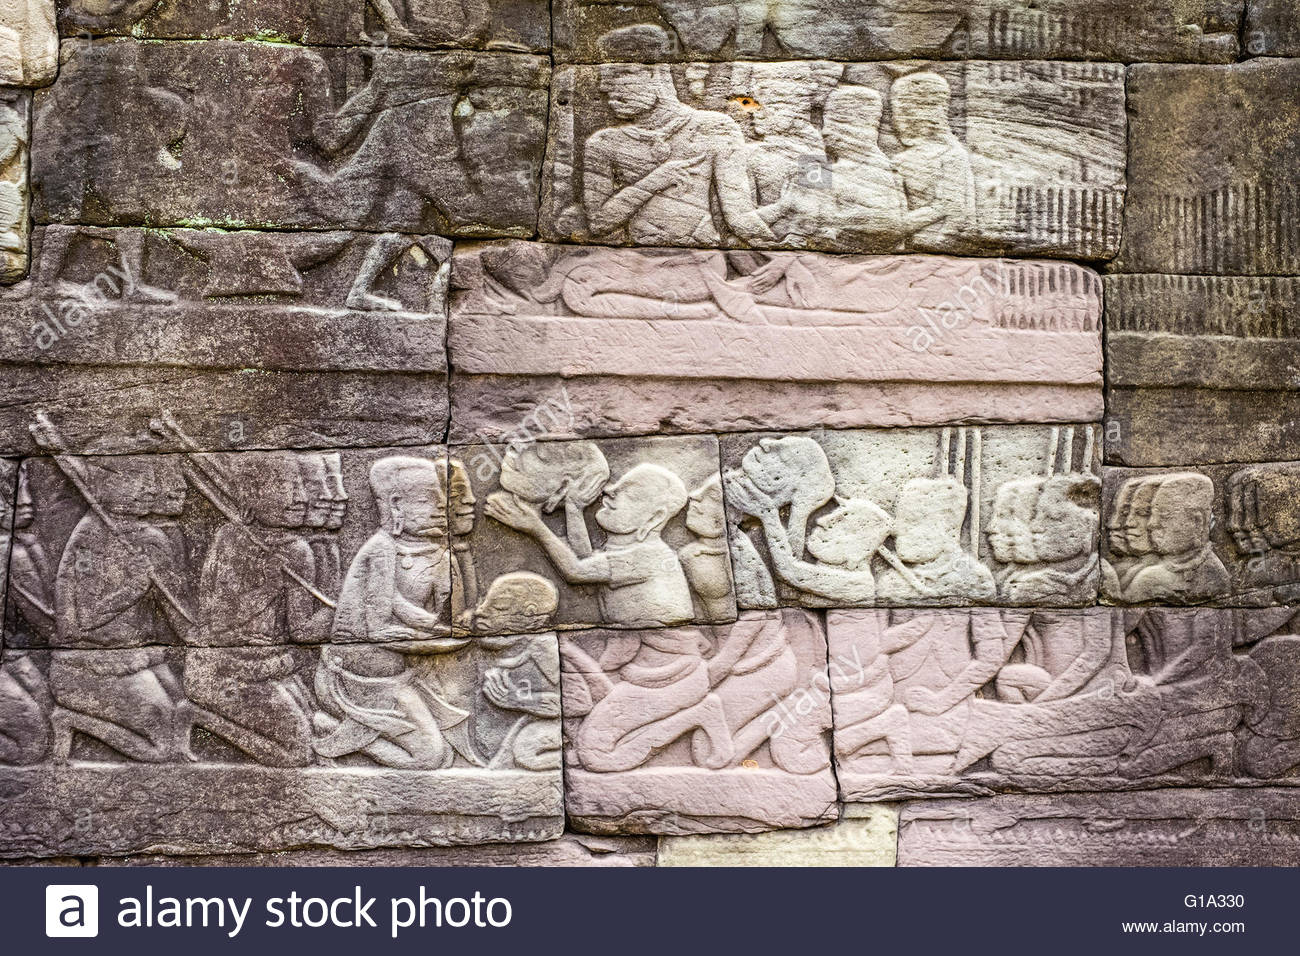 Bas-relief stone carvings depicting beheaded enemies, battle against the Cham, southern wall, Banteay Chhmar, Cambodia - Stock Image